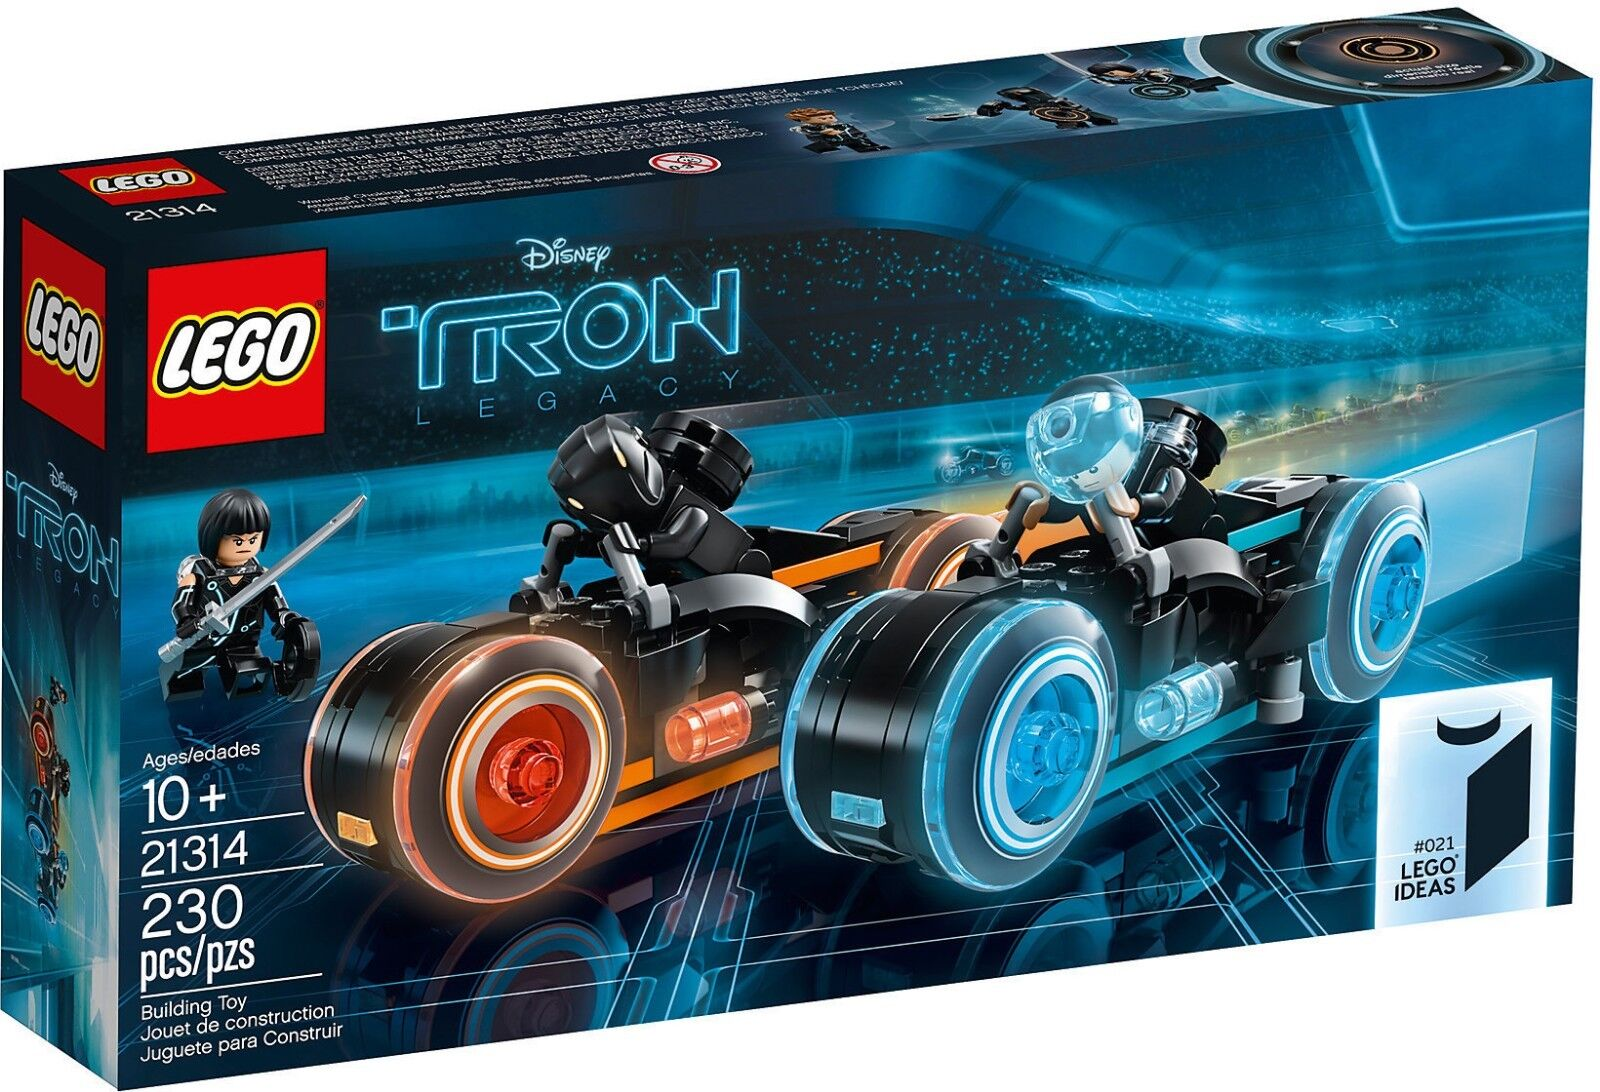 LEGO Ideas 21314 - Tron  Legacy NUOVO DISPONIBILITA' IMMEDIATA